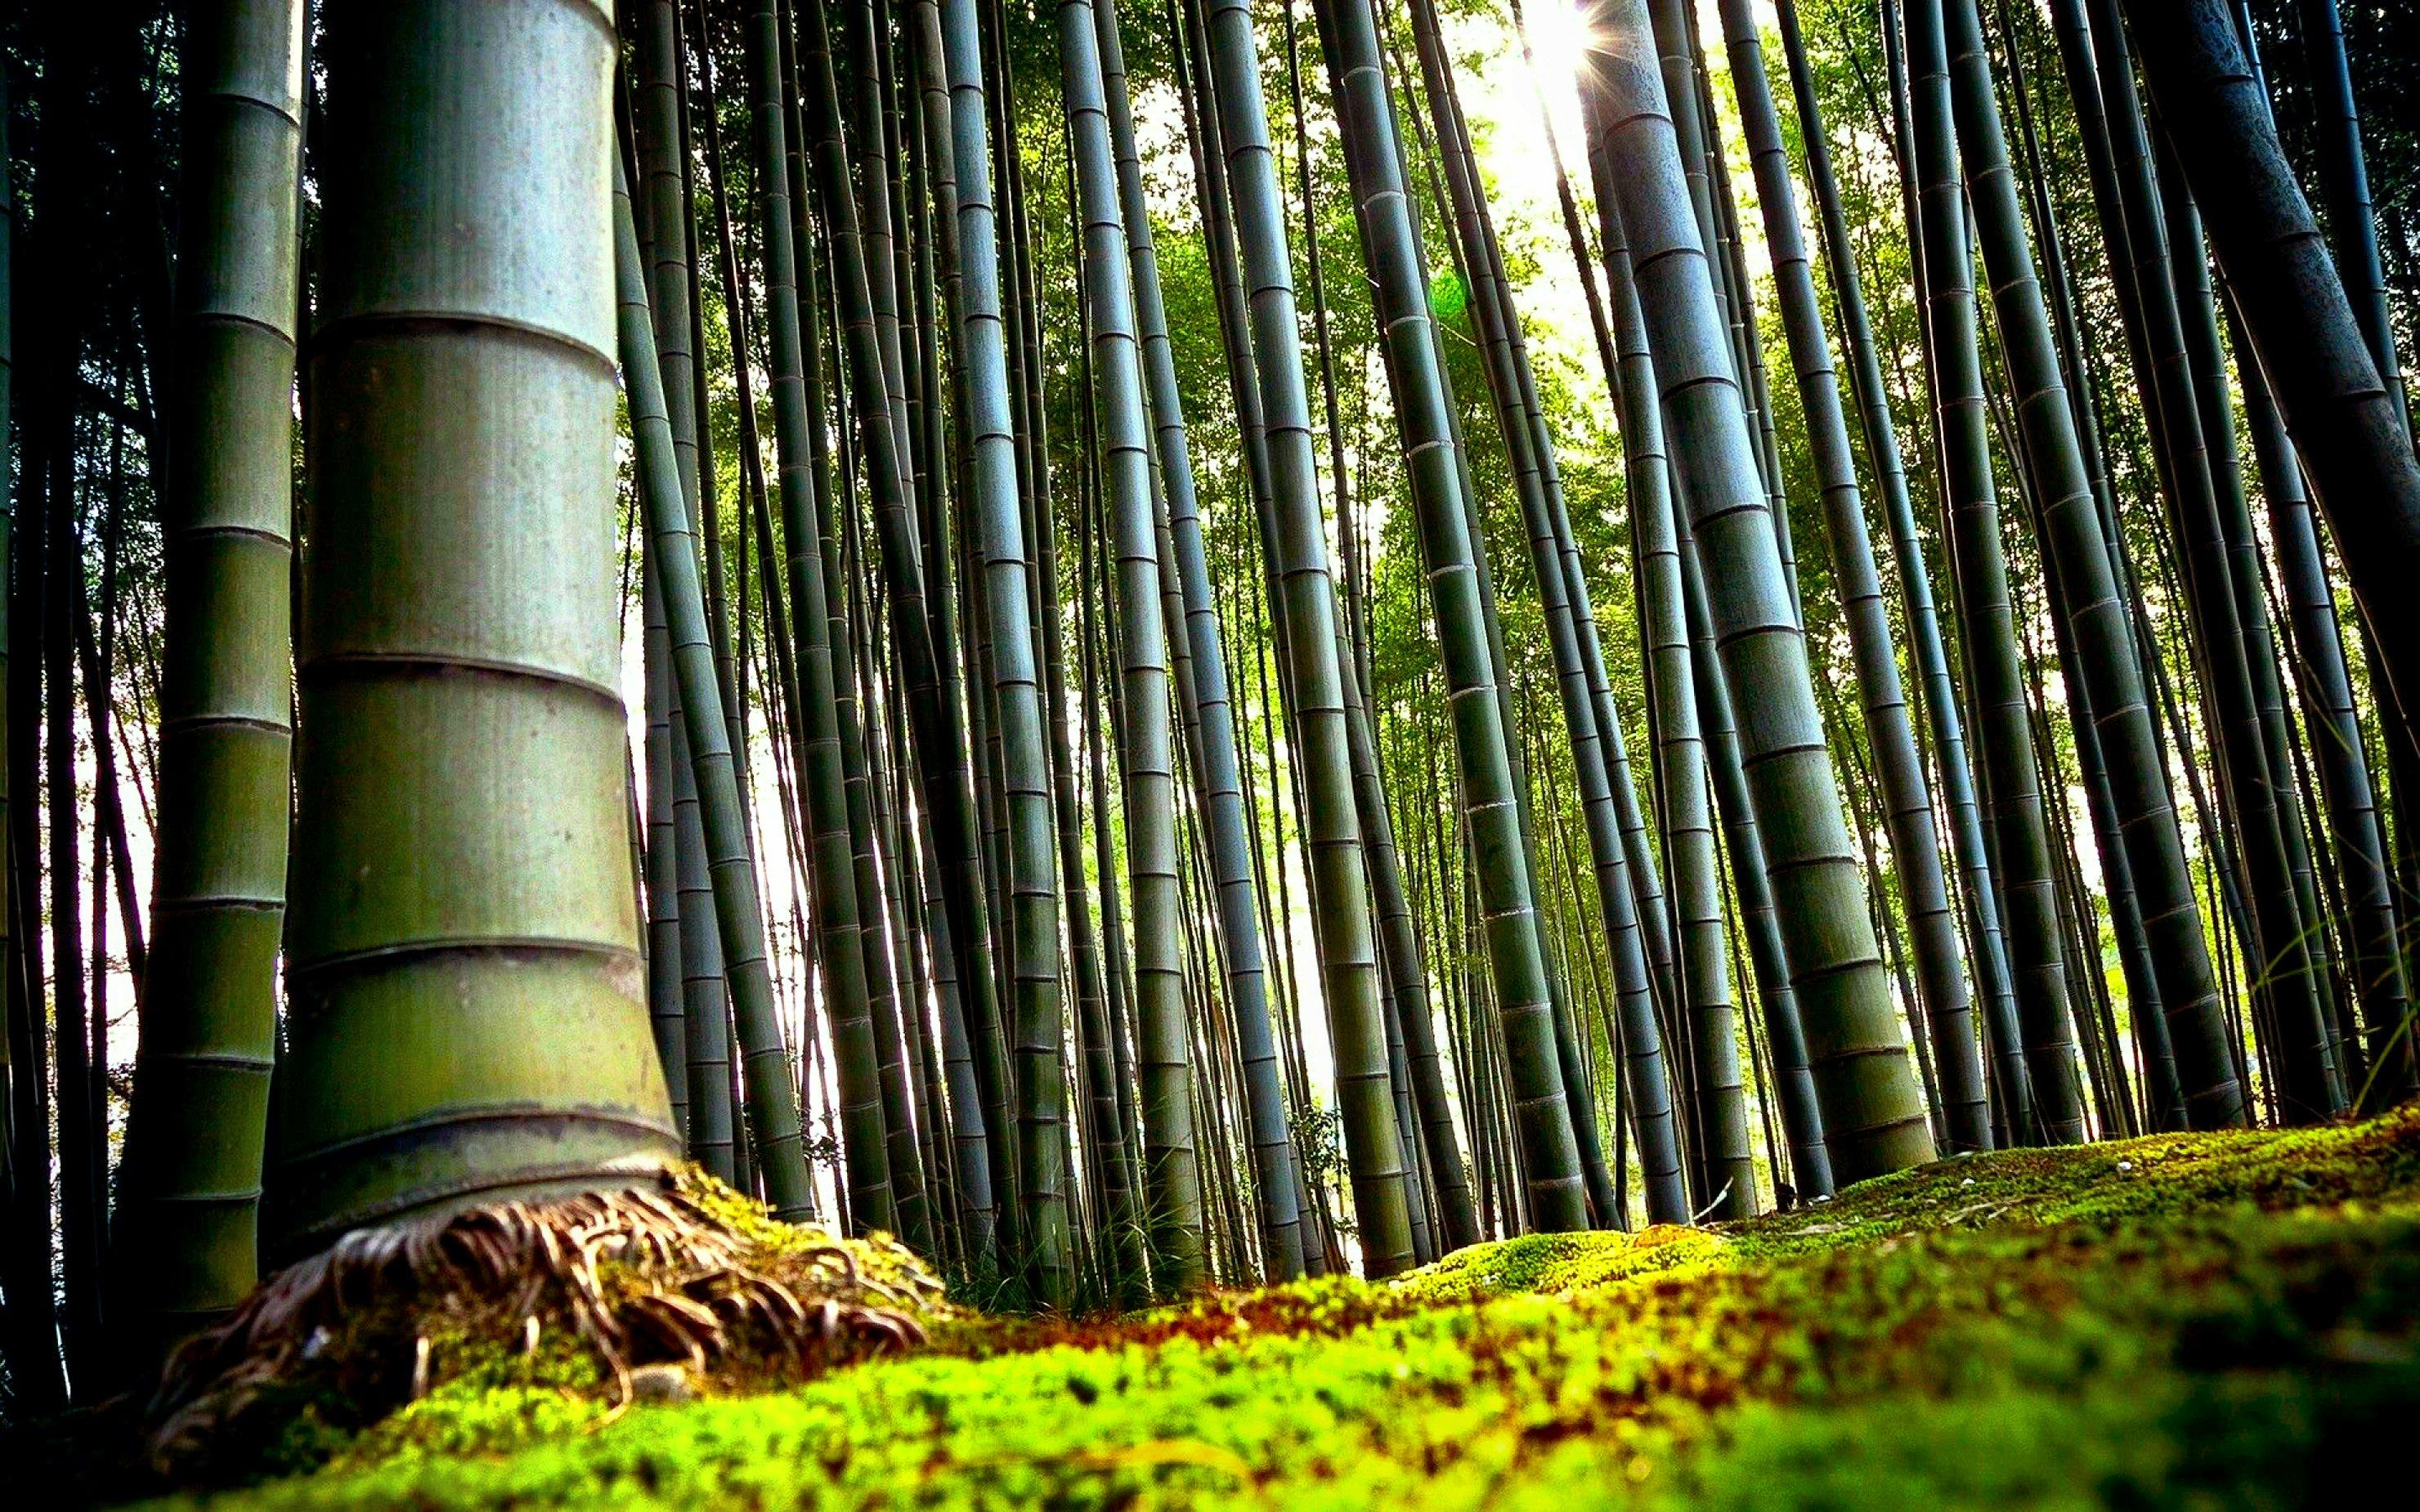 Wallpaper Nature Full Size Desktop 2014 Chinese Bamboo Tree Roots 560621 Hd Wallpaper Backgrounds Download